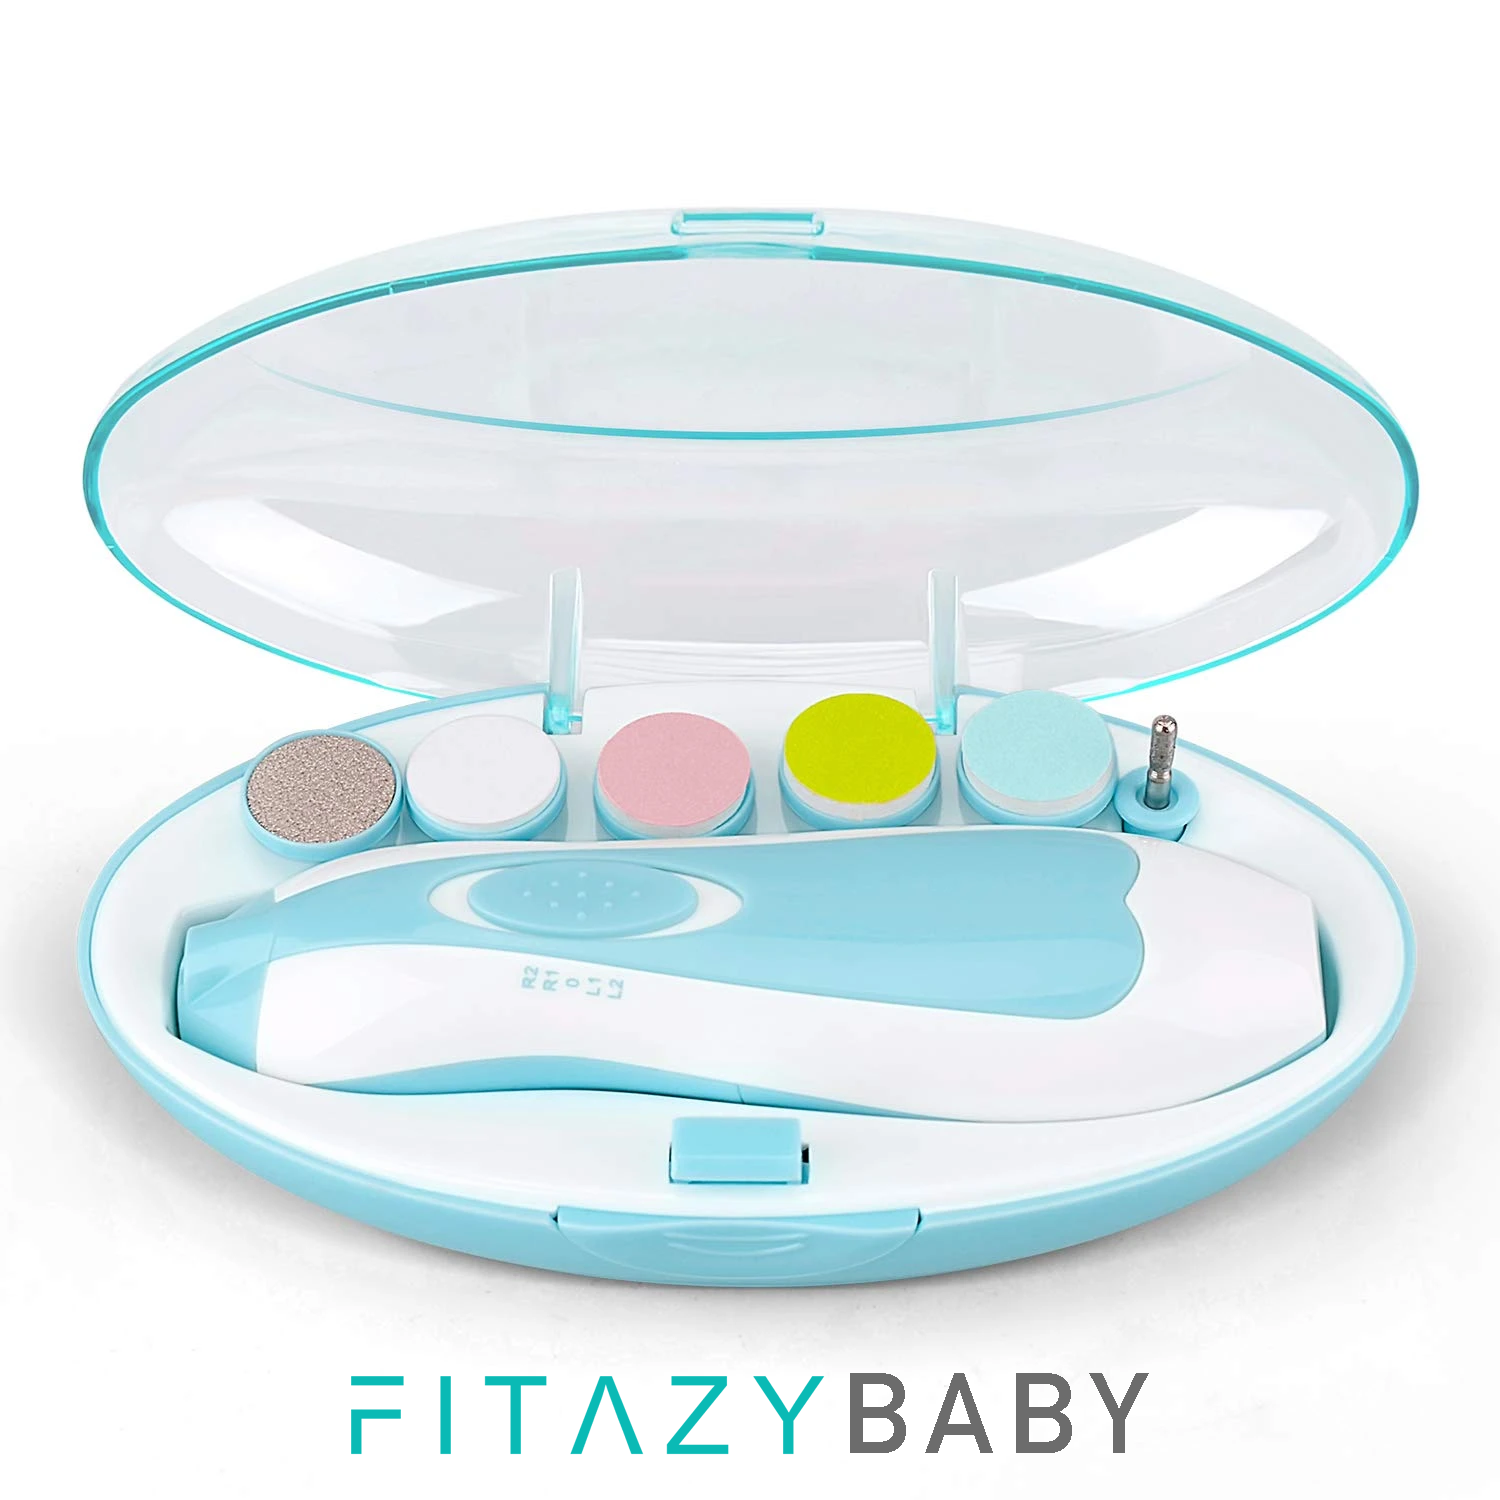 FitazyBaby Nail Trimmer